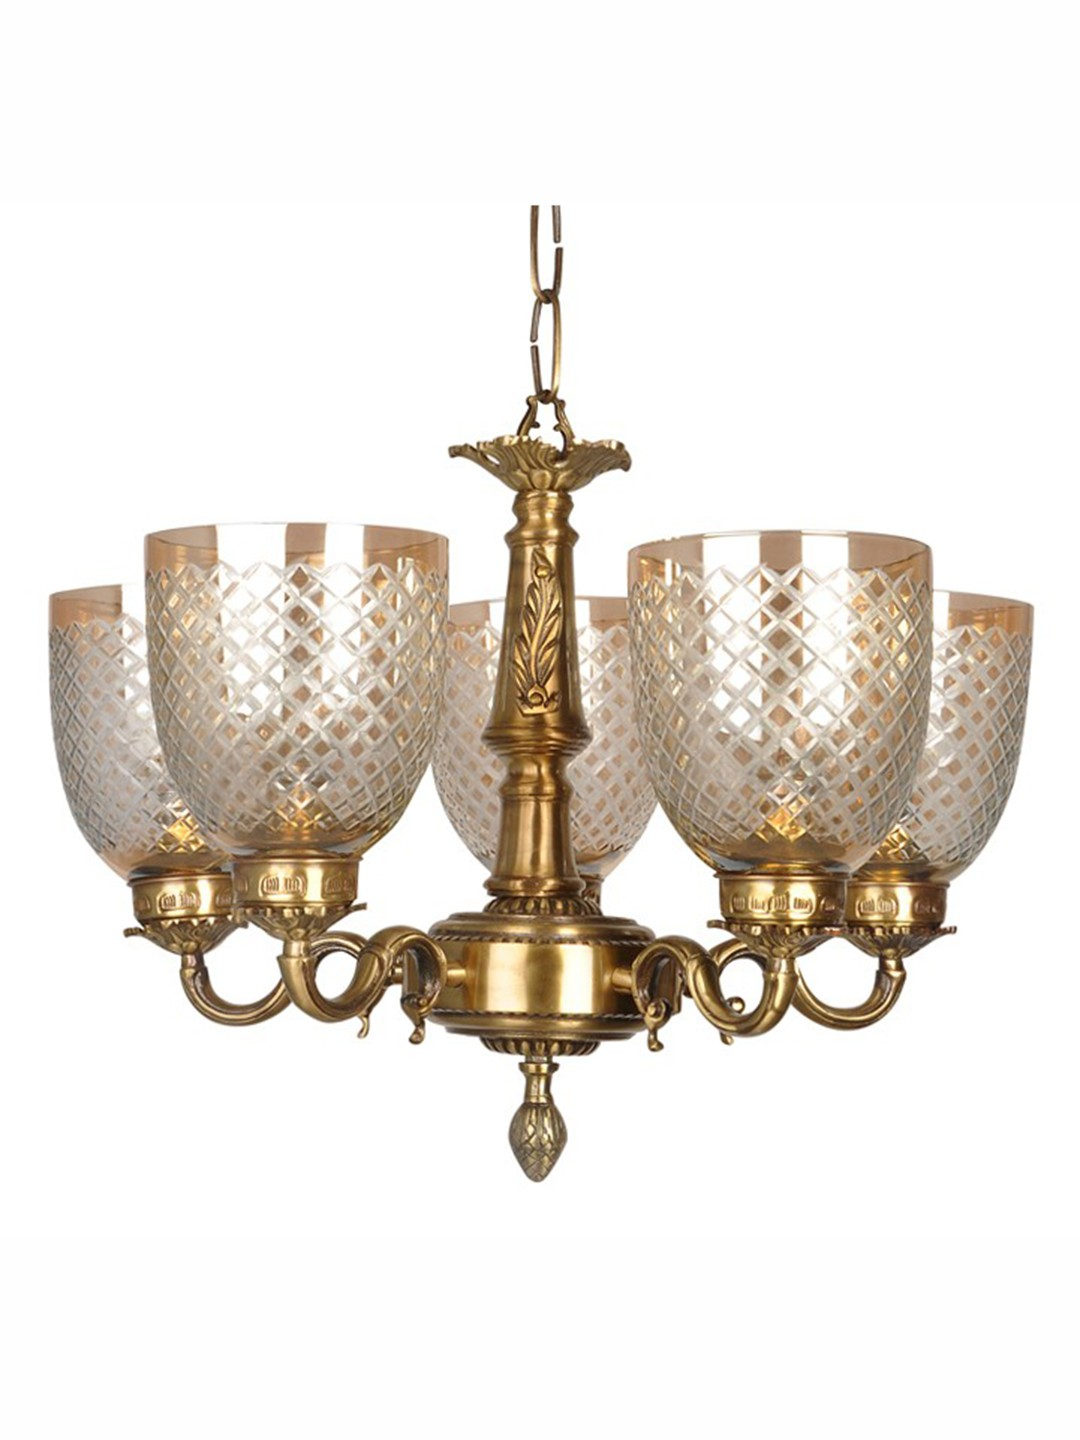 Brass vine chandelier with diamond cut lustrous glass